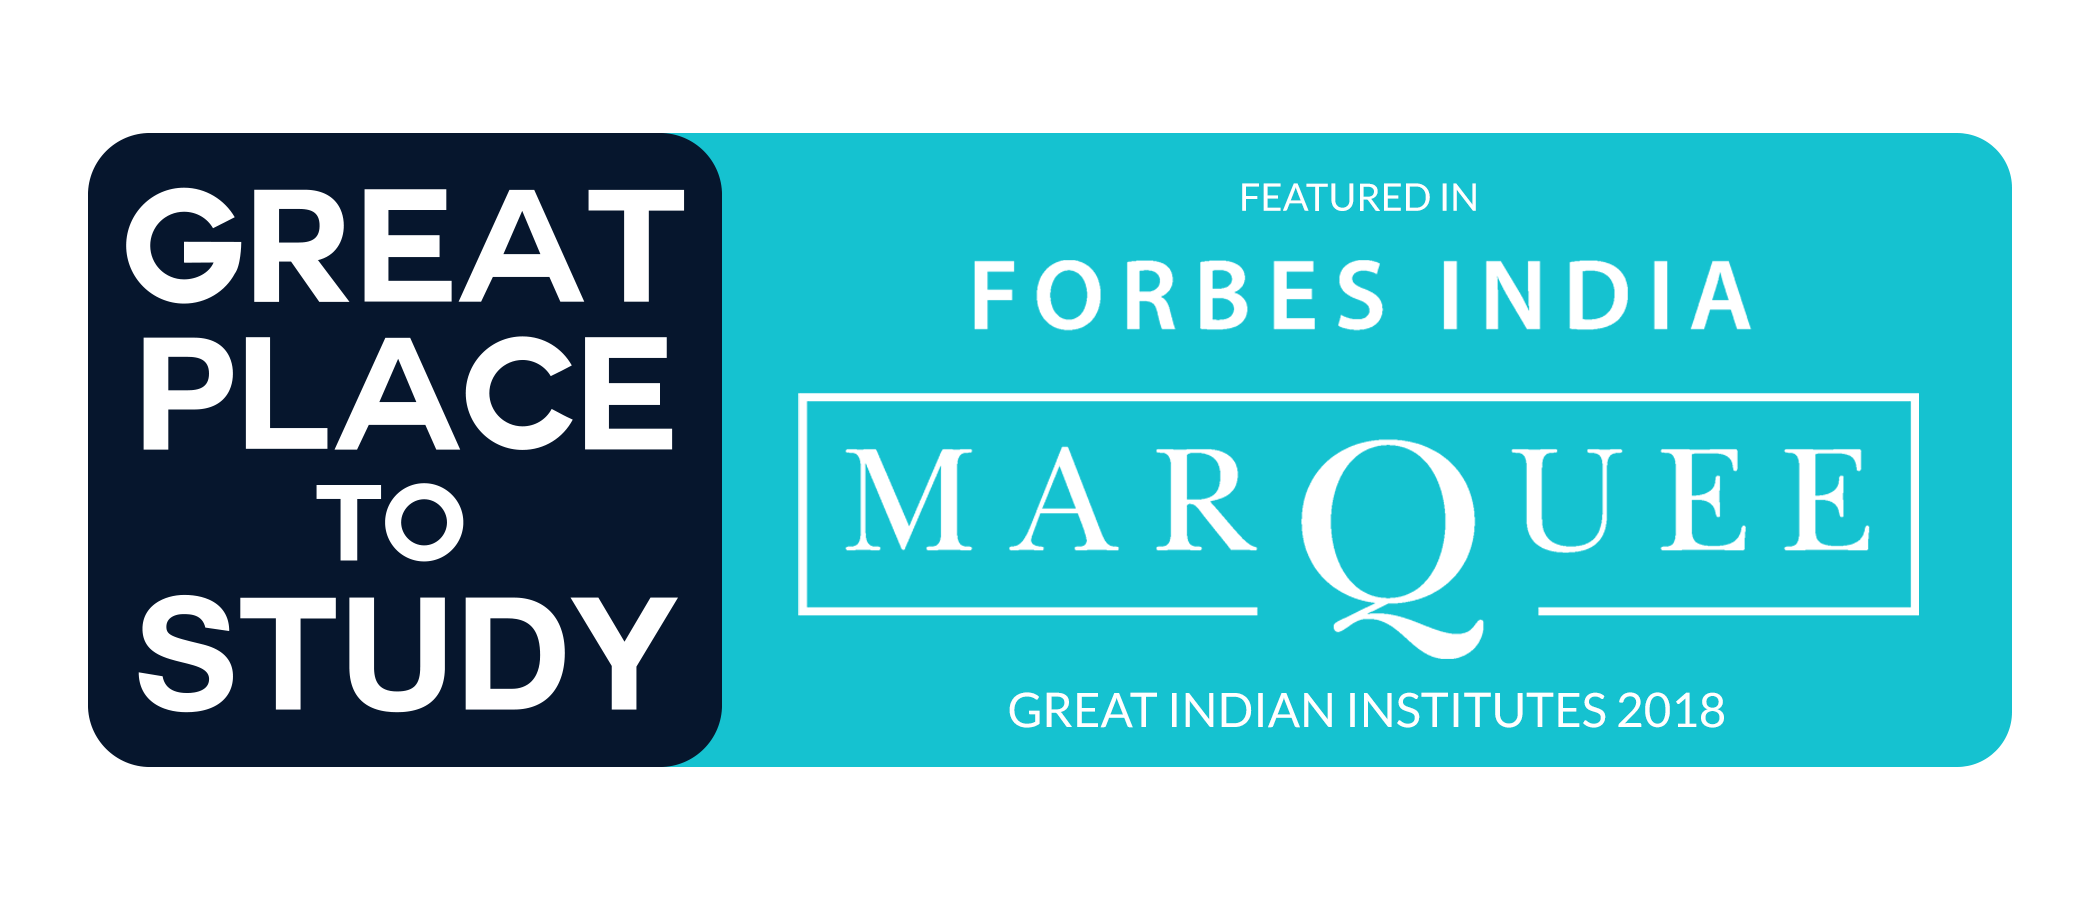 IBA recognized as great place to study by Forbes India